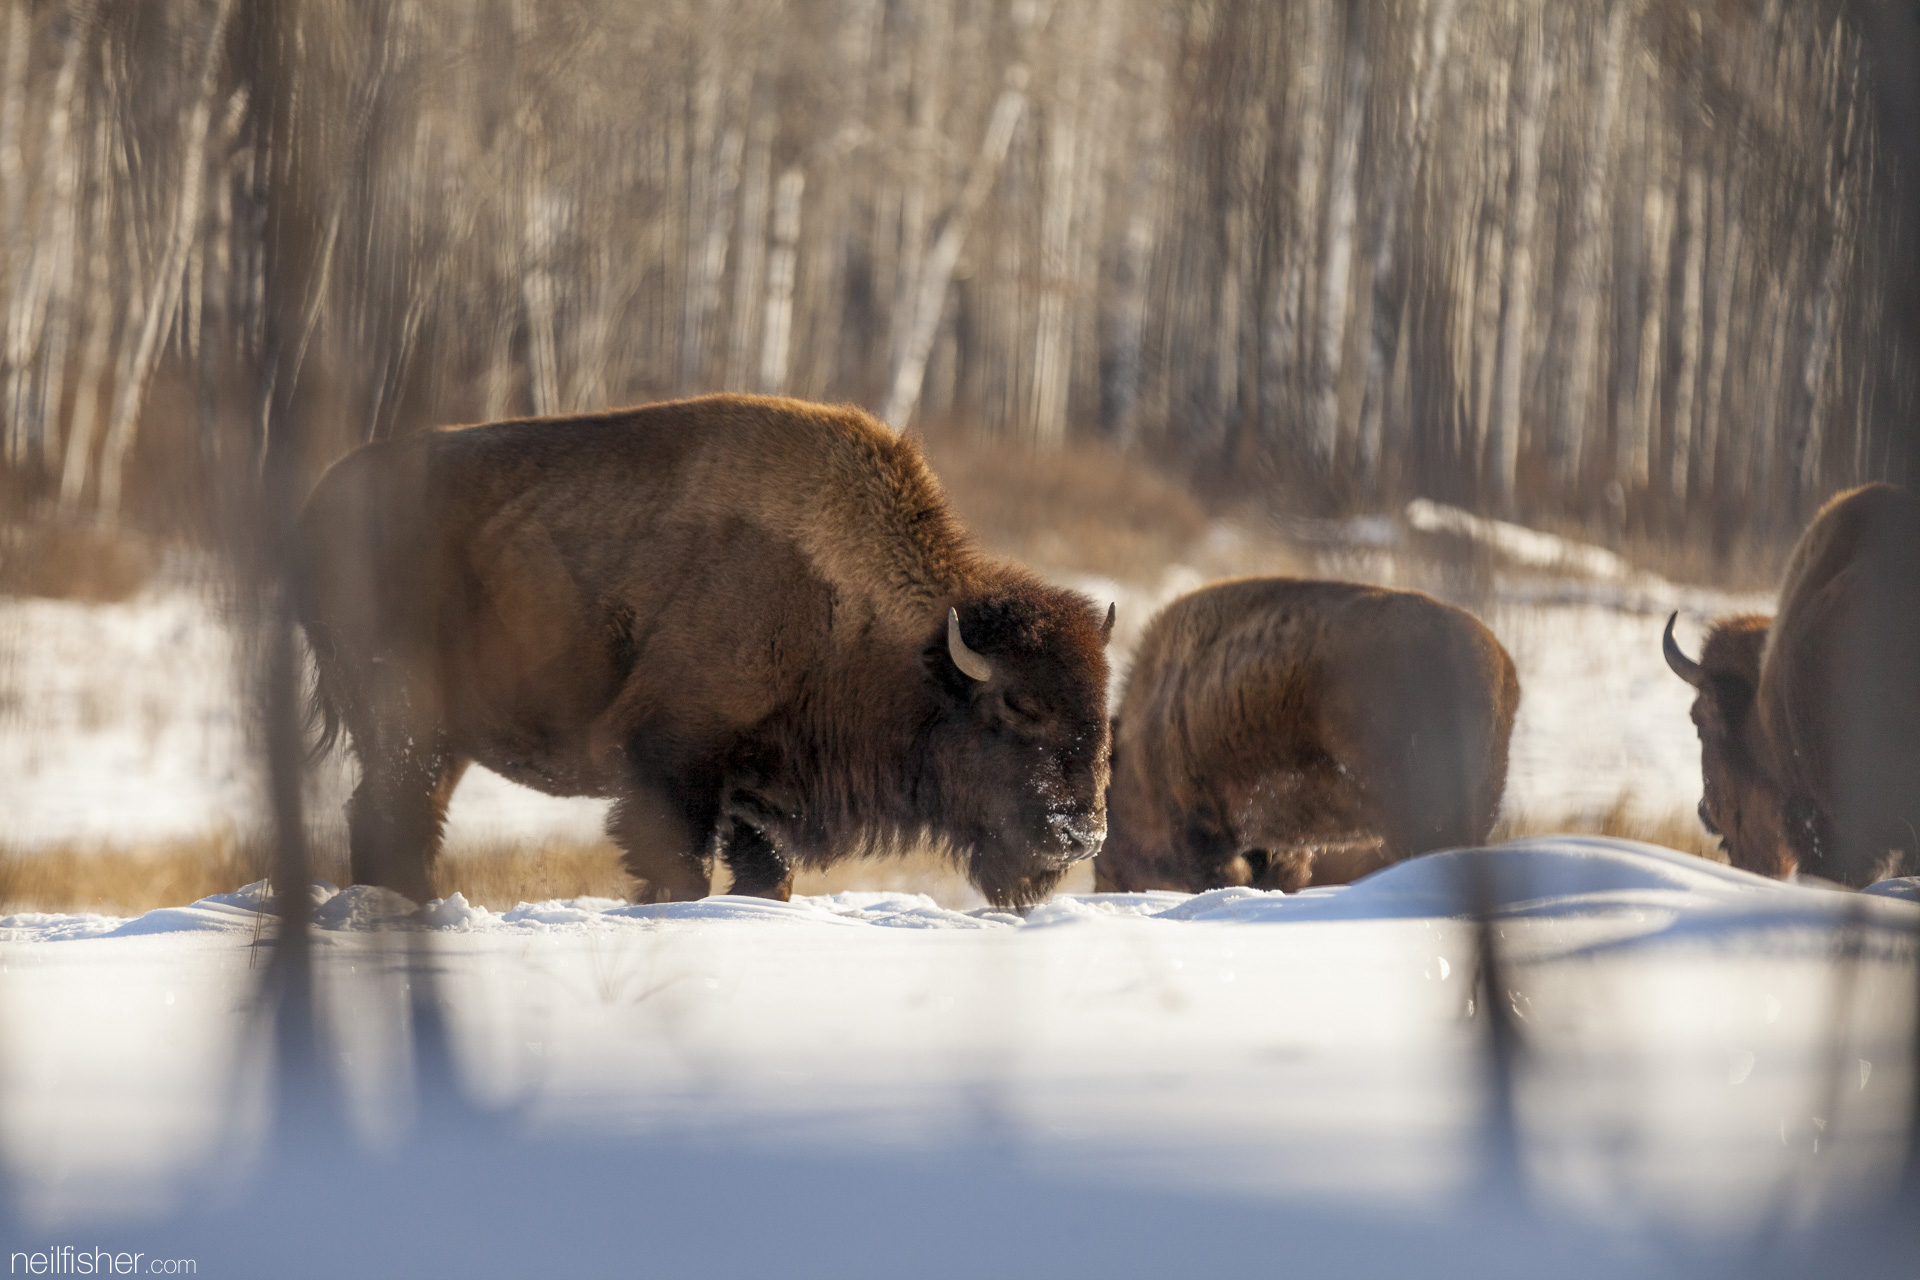 Bison gave the First Peoples of the great plains all the necessities of survival - from food, clothing, shelter and tools. It's no wonder the bison is held in such high reverence by these people.